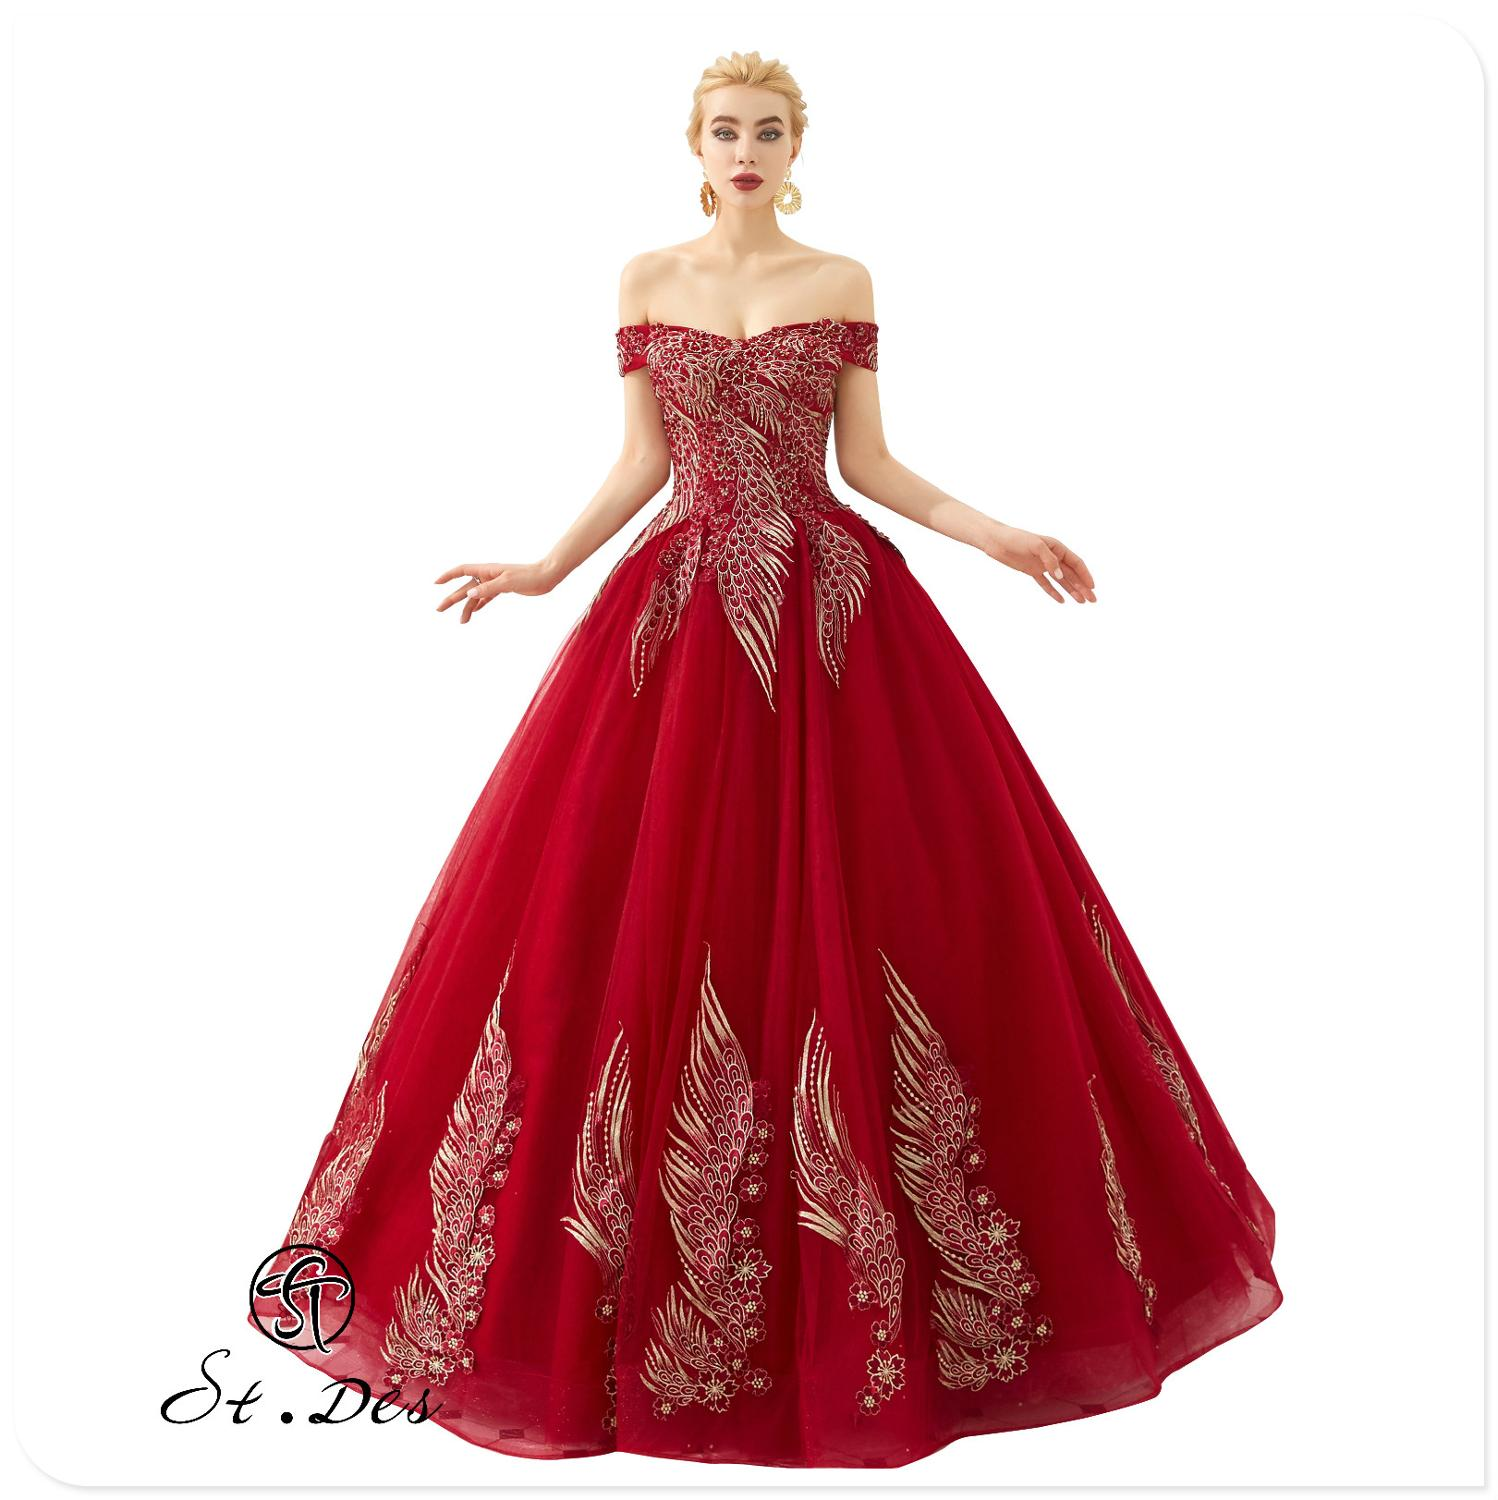 NEW 2020 St.Des A-line Strapless Russian Red Phoenix Sequins Beading Sleeveless Designer Floor Length Evening Dress Party Dress